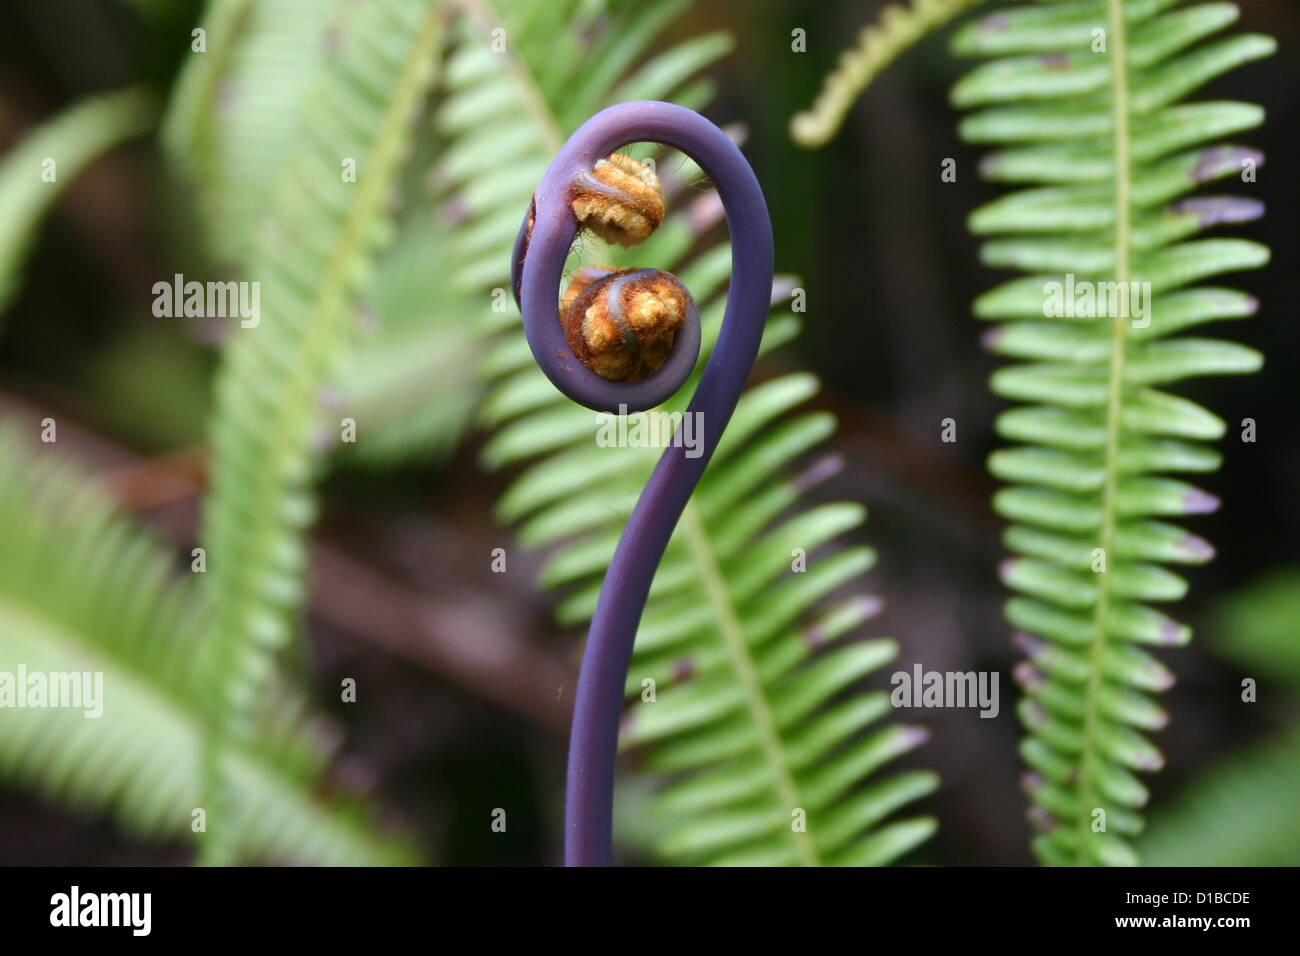 Black fiddlehead fern tendril with ferns in background Stock Photo